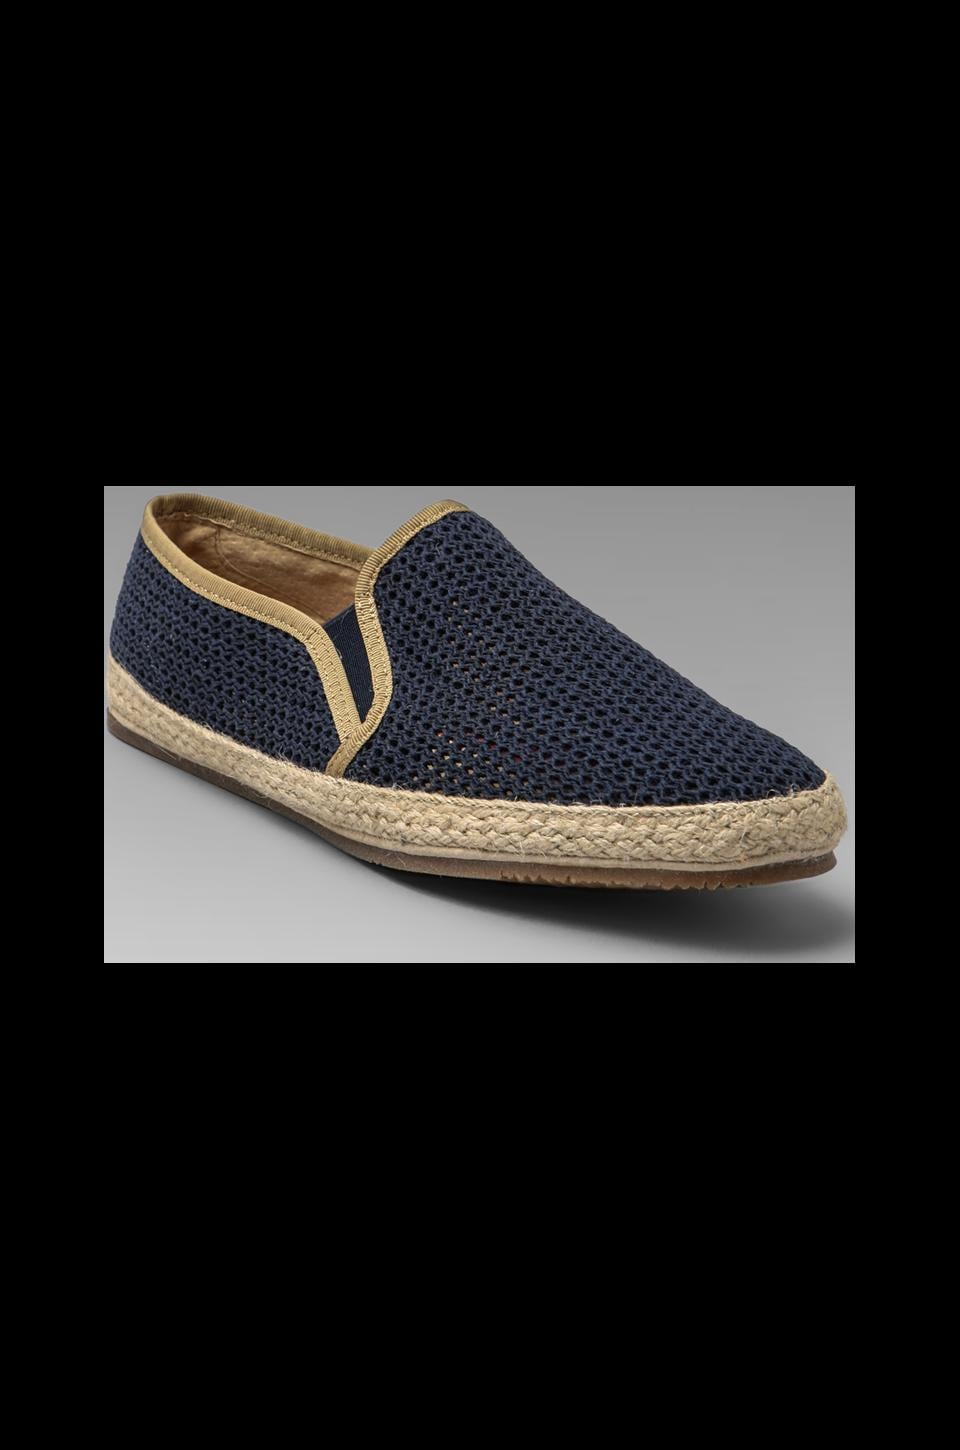 H by Hudson Belafonte Mesh Slip-On in Navy